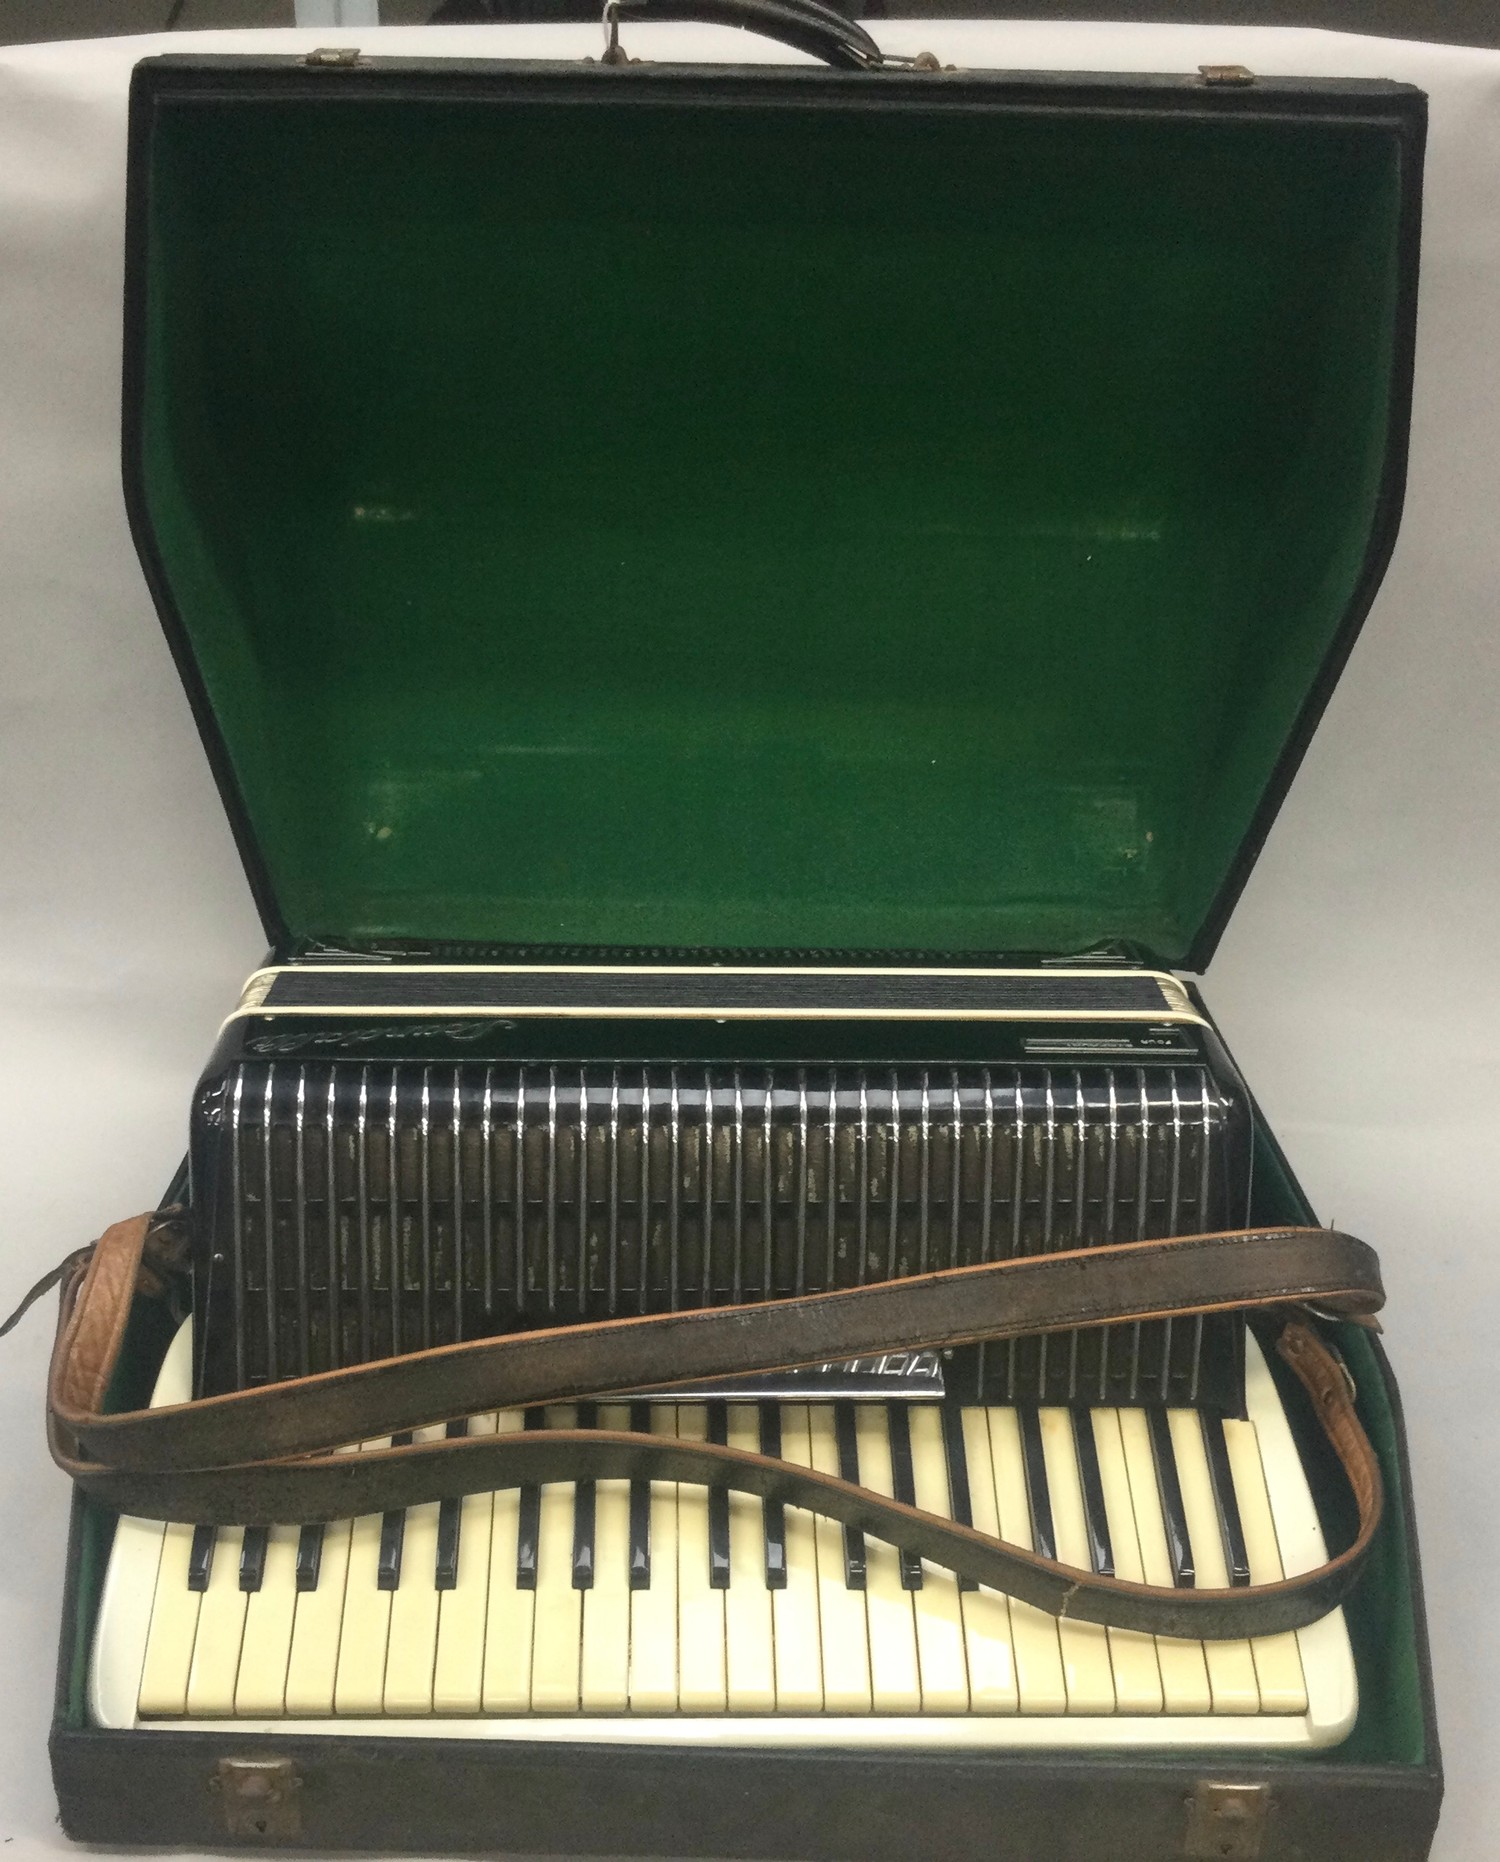 Boxed Symphony 4 accordion. - Image 6 of 7